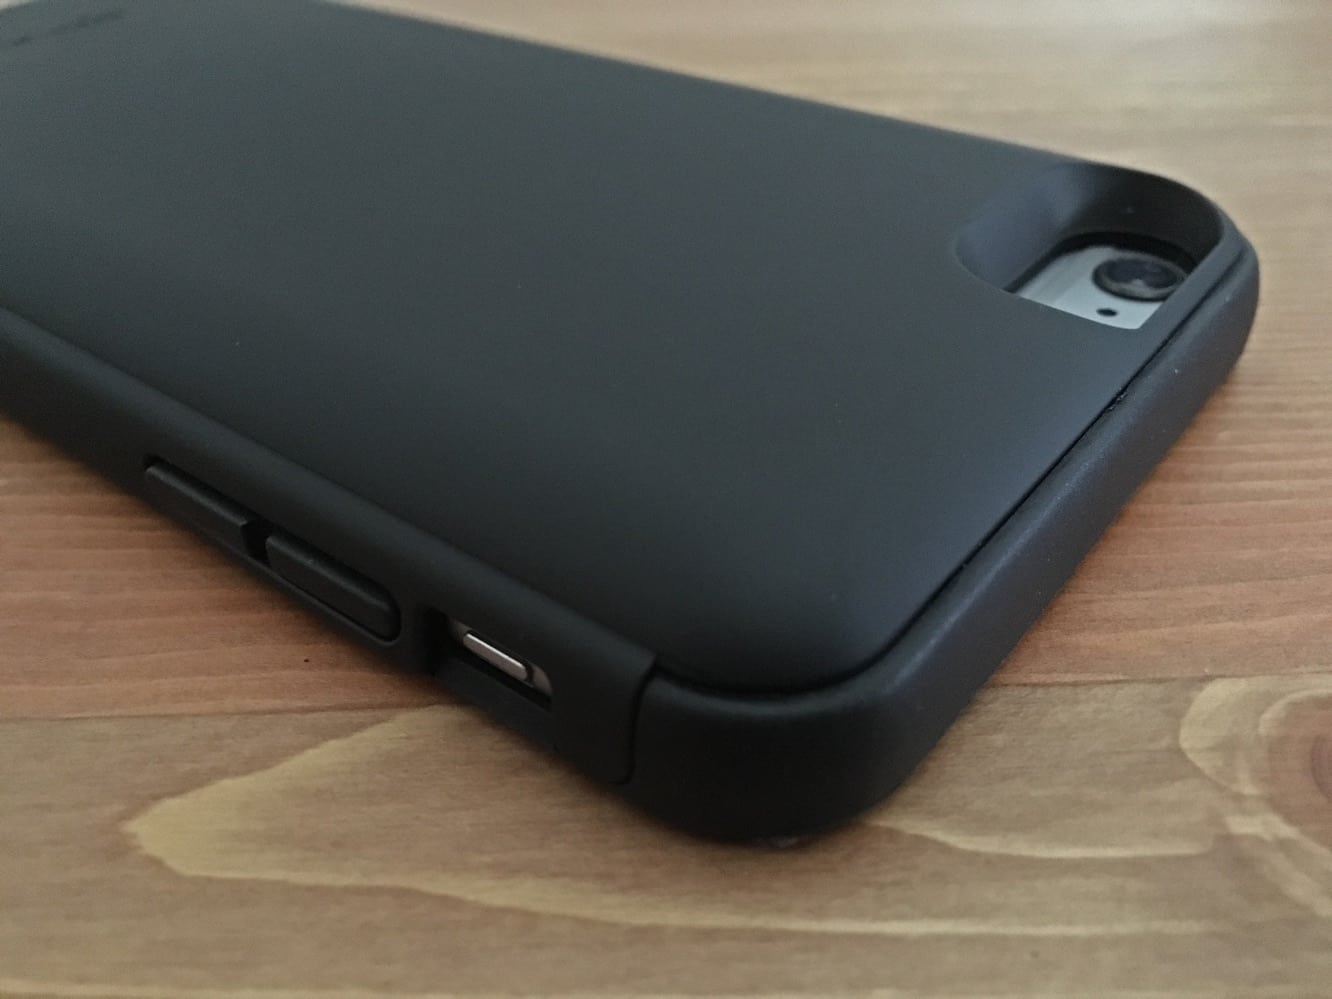 Review: Spyder PowerShadow Battery Case for iPhone 6/6s Plus